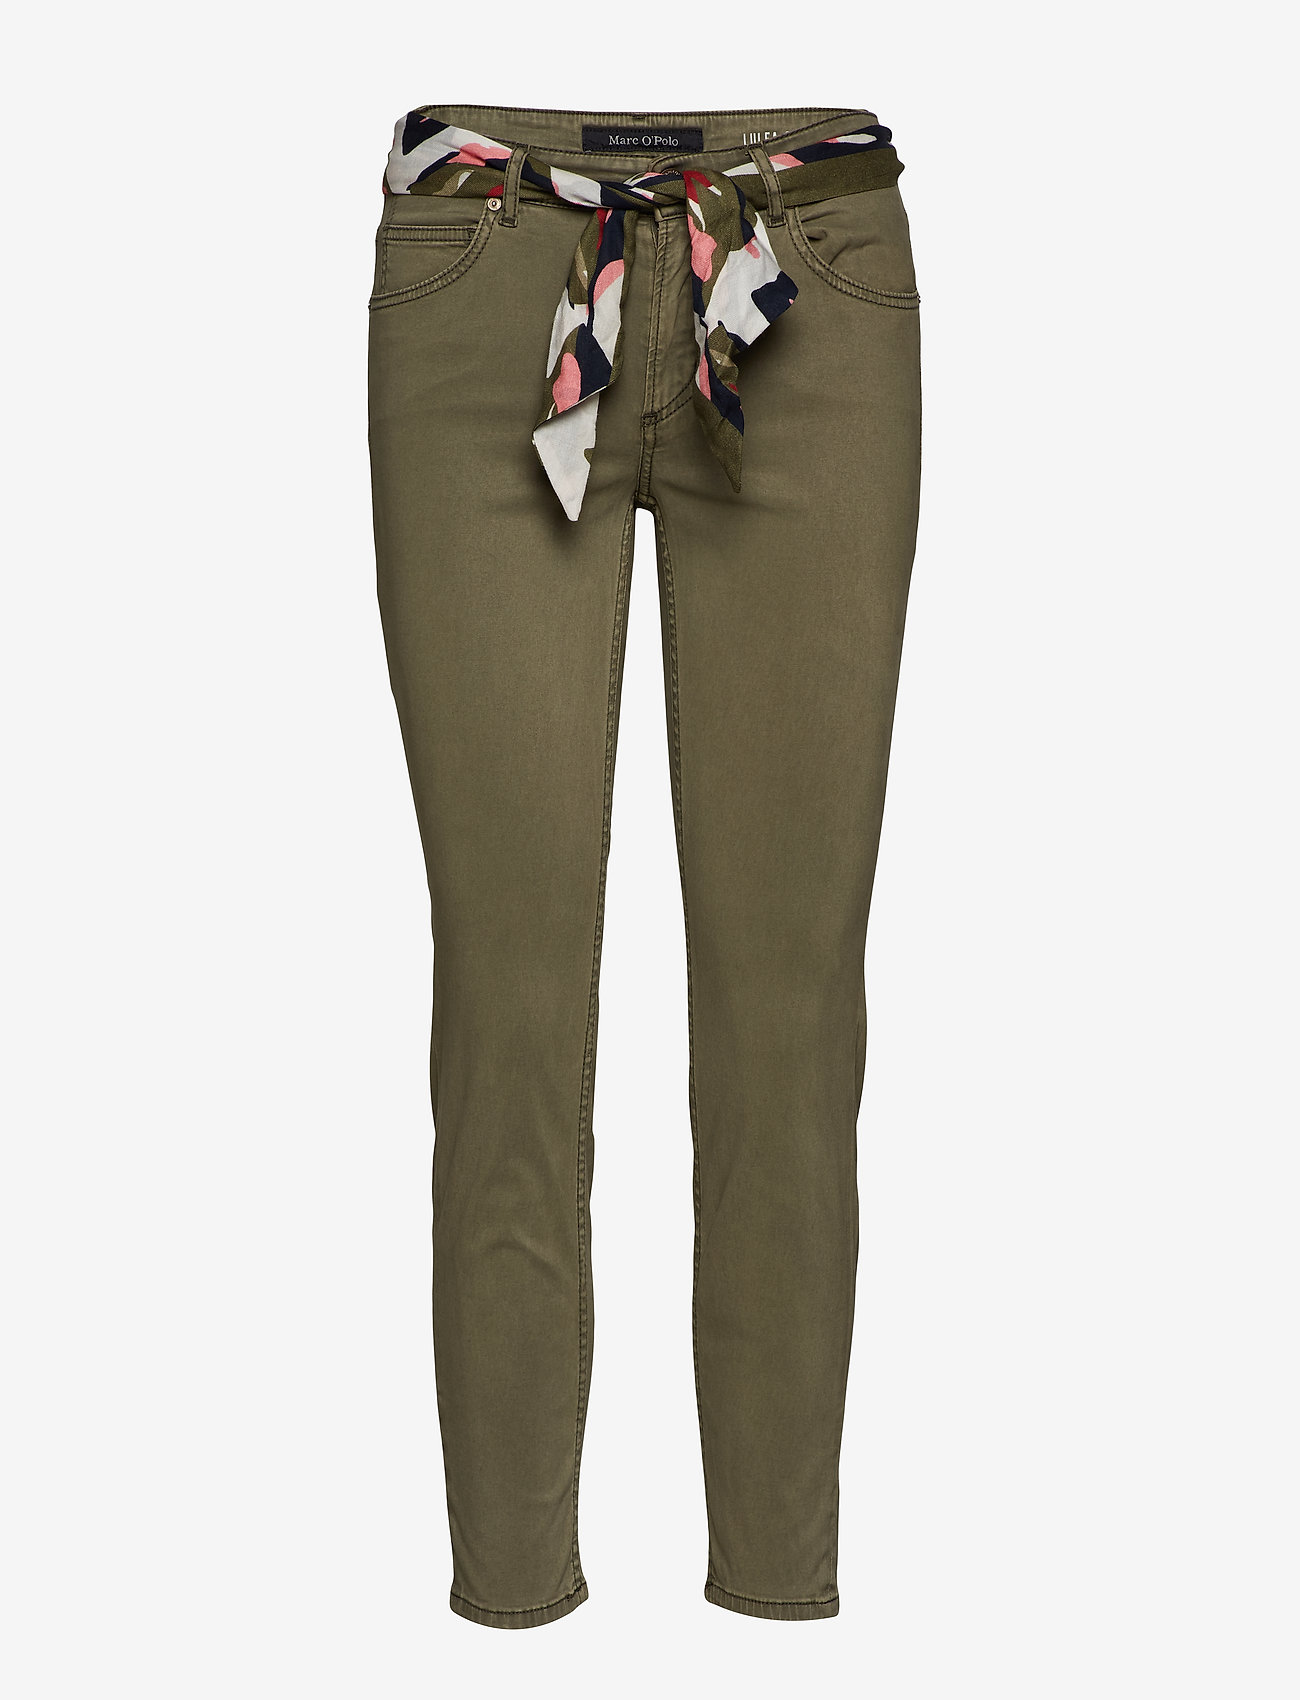 Marc O'Polo - Jeans - skinny jeans - burnt olive - 0